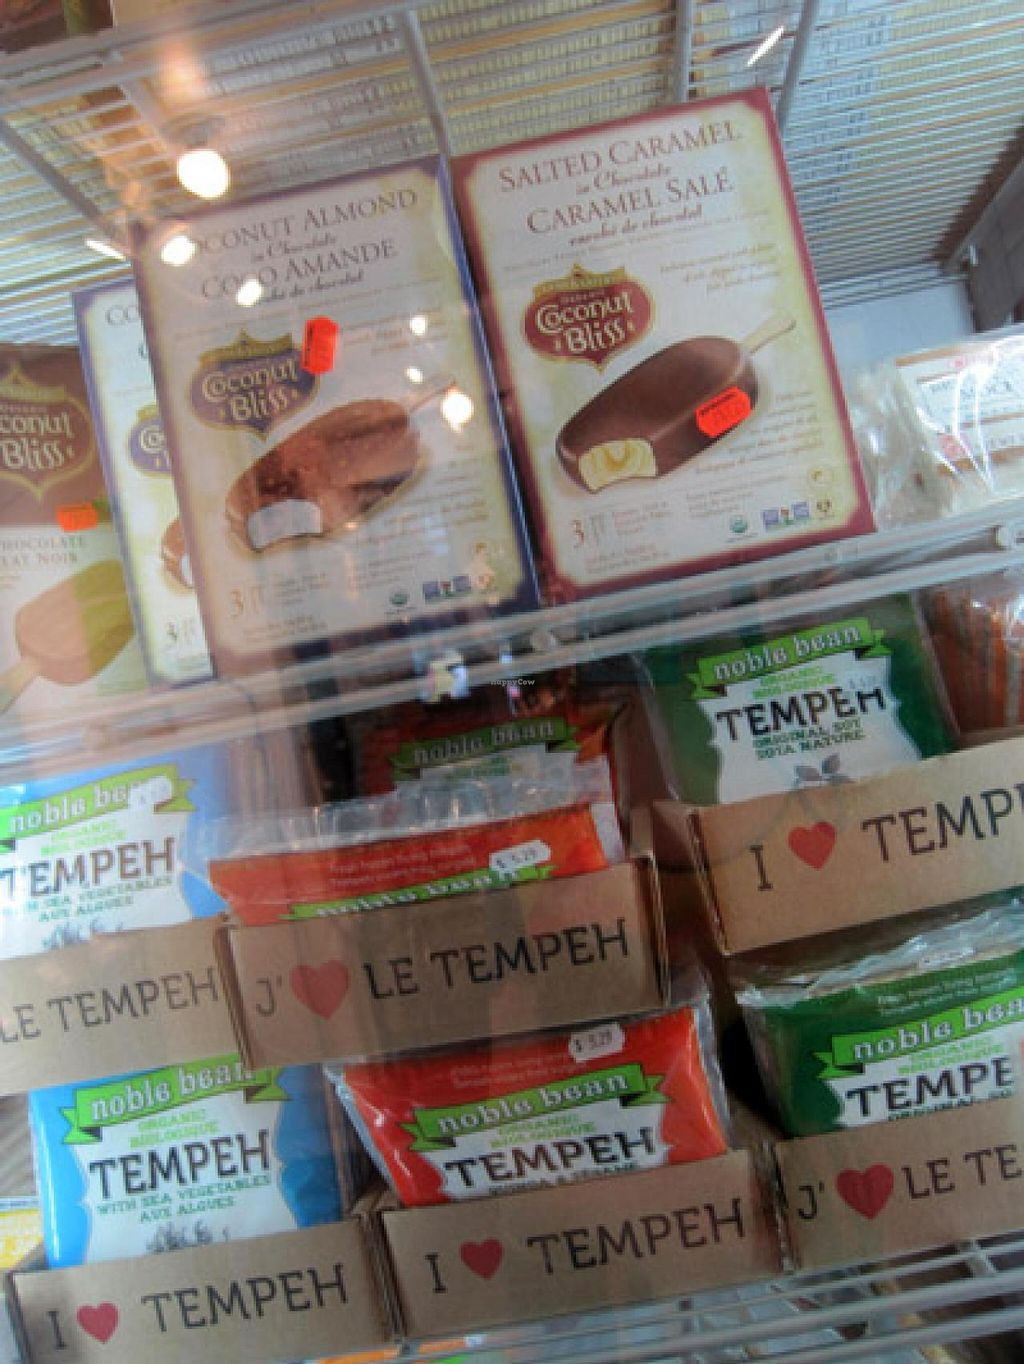 "Photo of Le Crac and La Carotte Joyeuse  by <a href=""/members/profile/Babette"">Babette</a> <br/>Frozen treats and tempeh <br/> May 20, 2015  - <a href='/contact/abuse/image/1393/102876'>Report</a>"